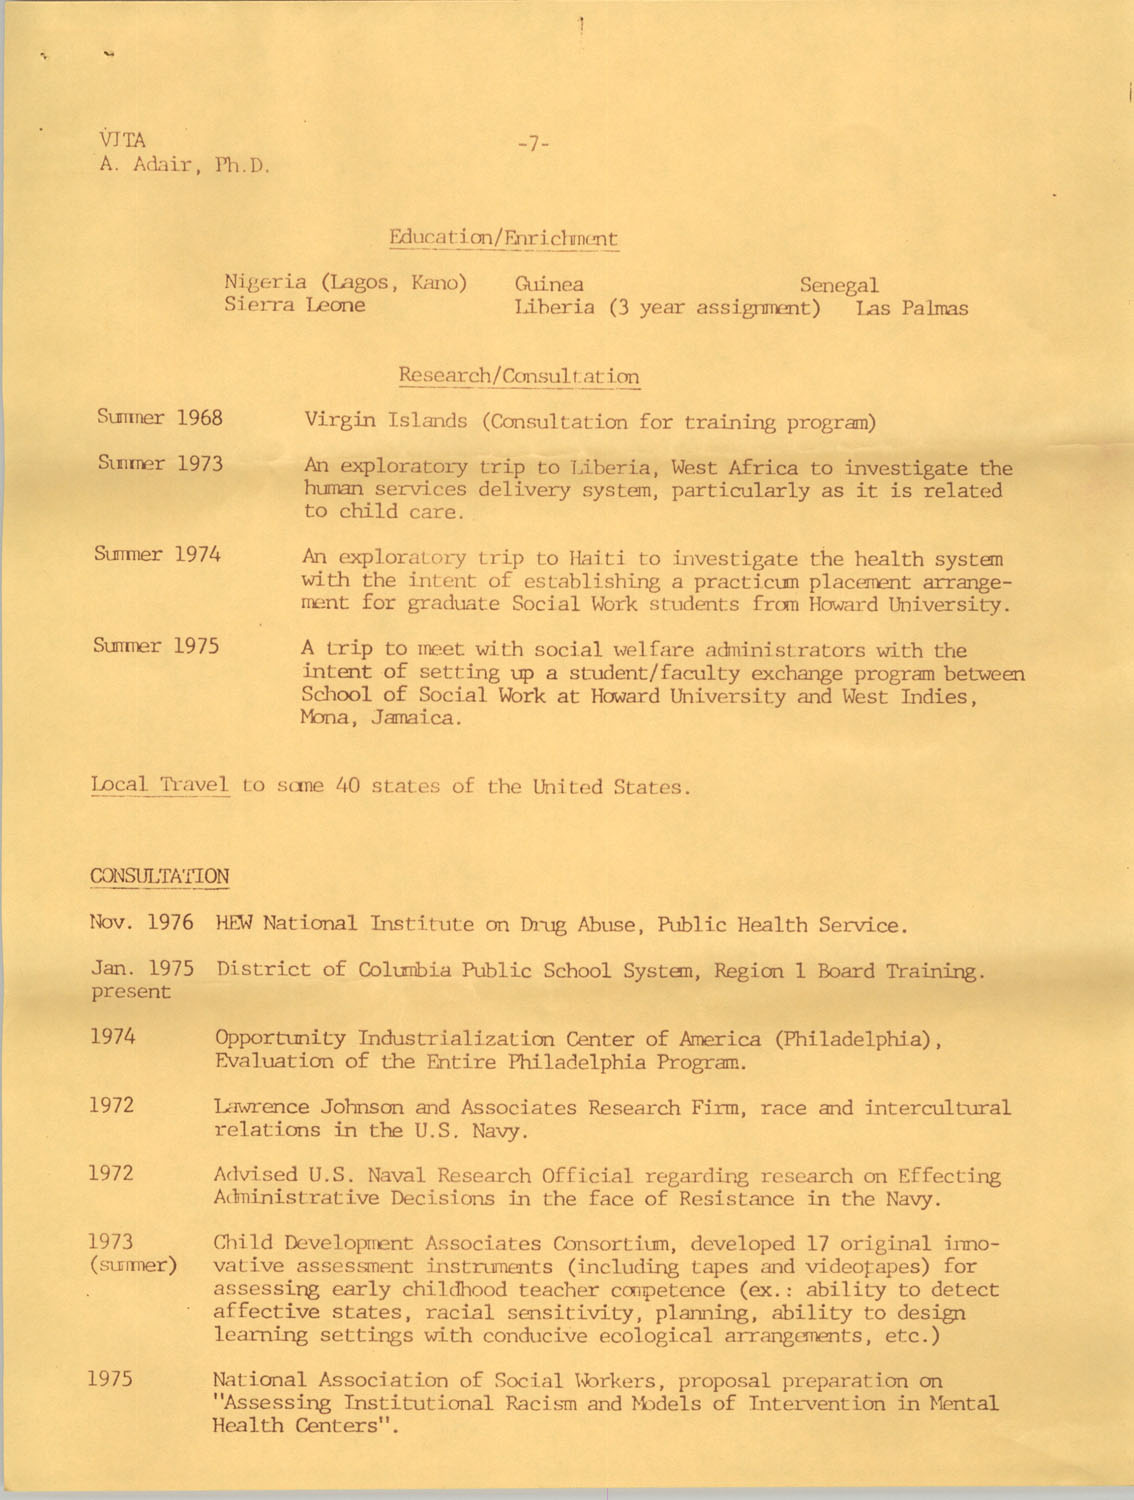 Alvis V. Adair Resume, Page 7